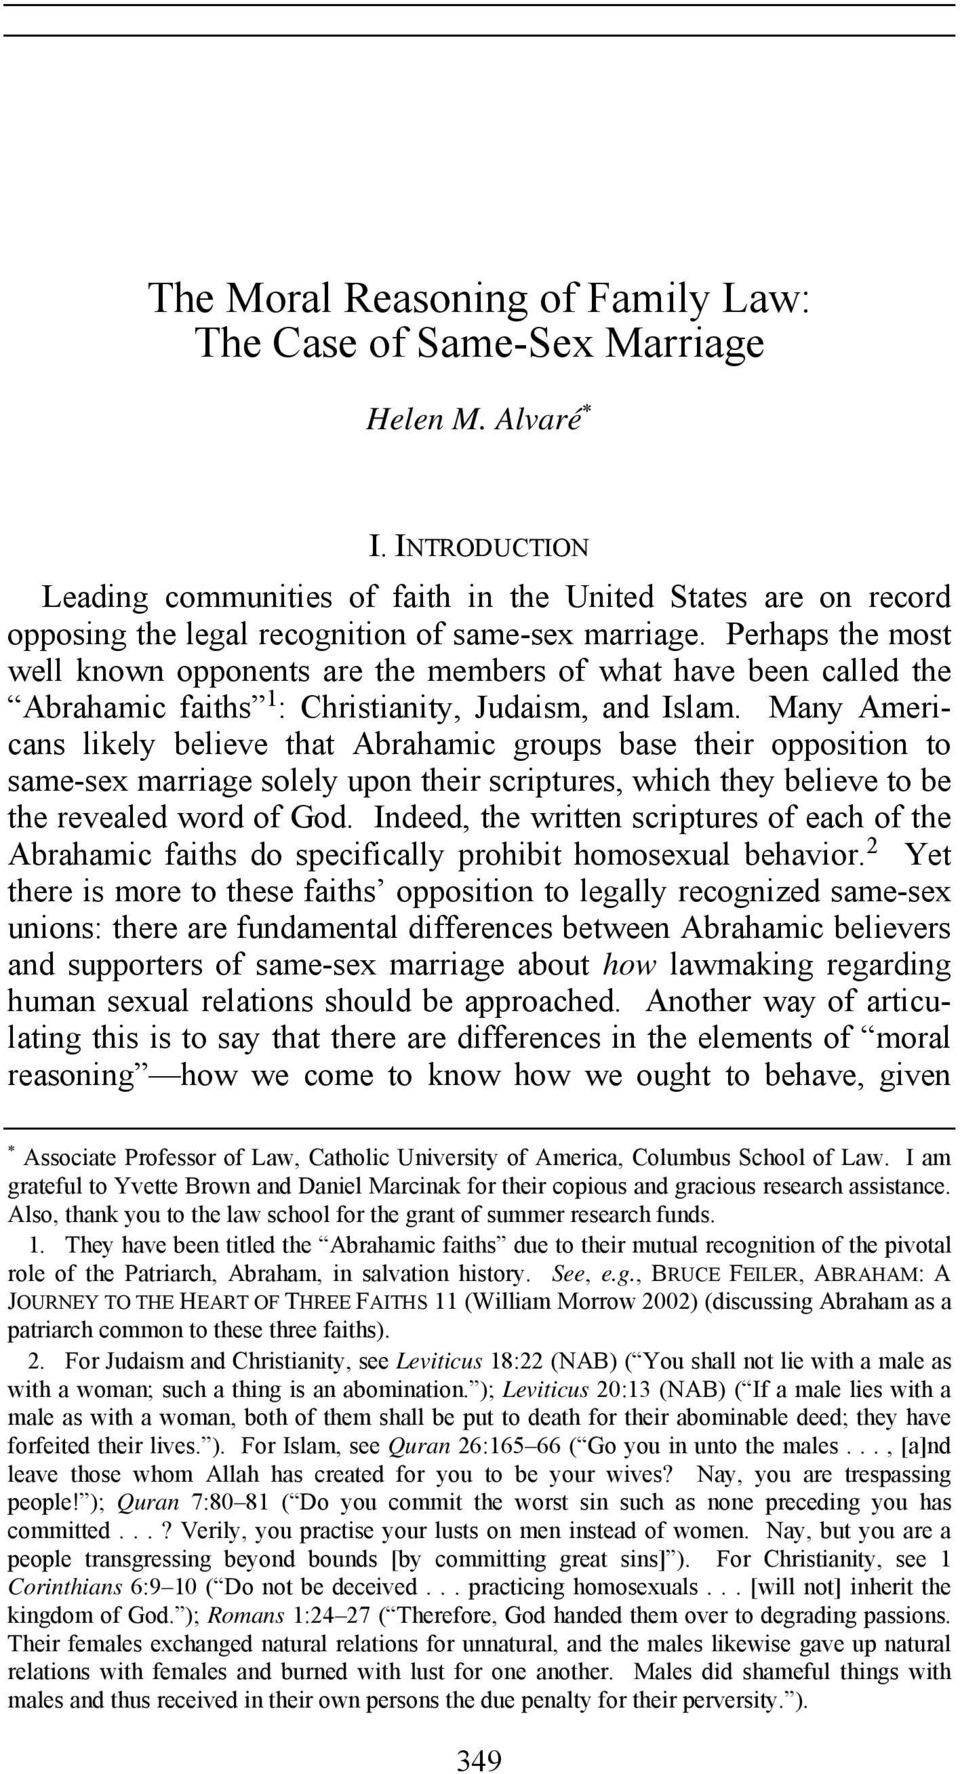 Perhaps the most well known opponents are the members of what have been called the Abrahamic faiths 1 : Christianity, Judaism, and Islam.